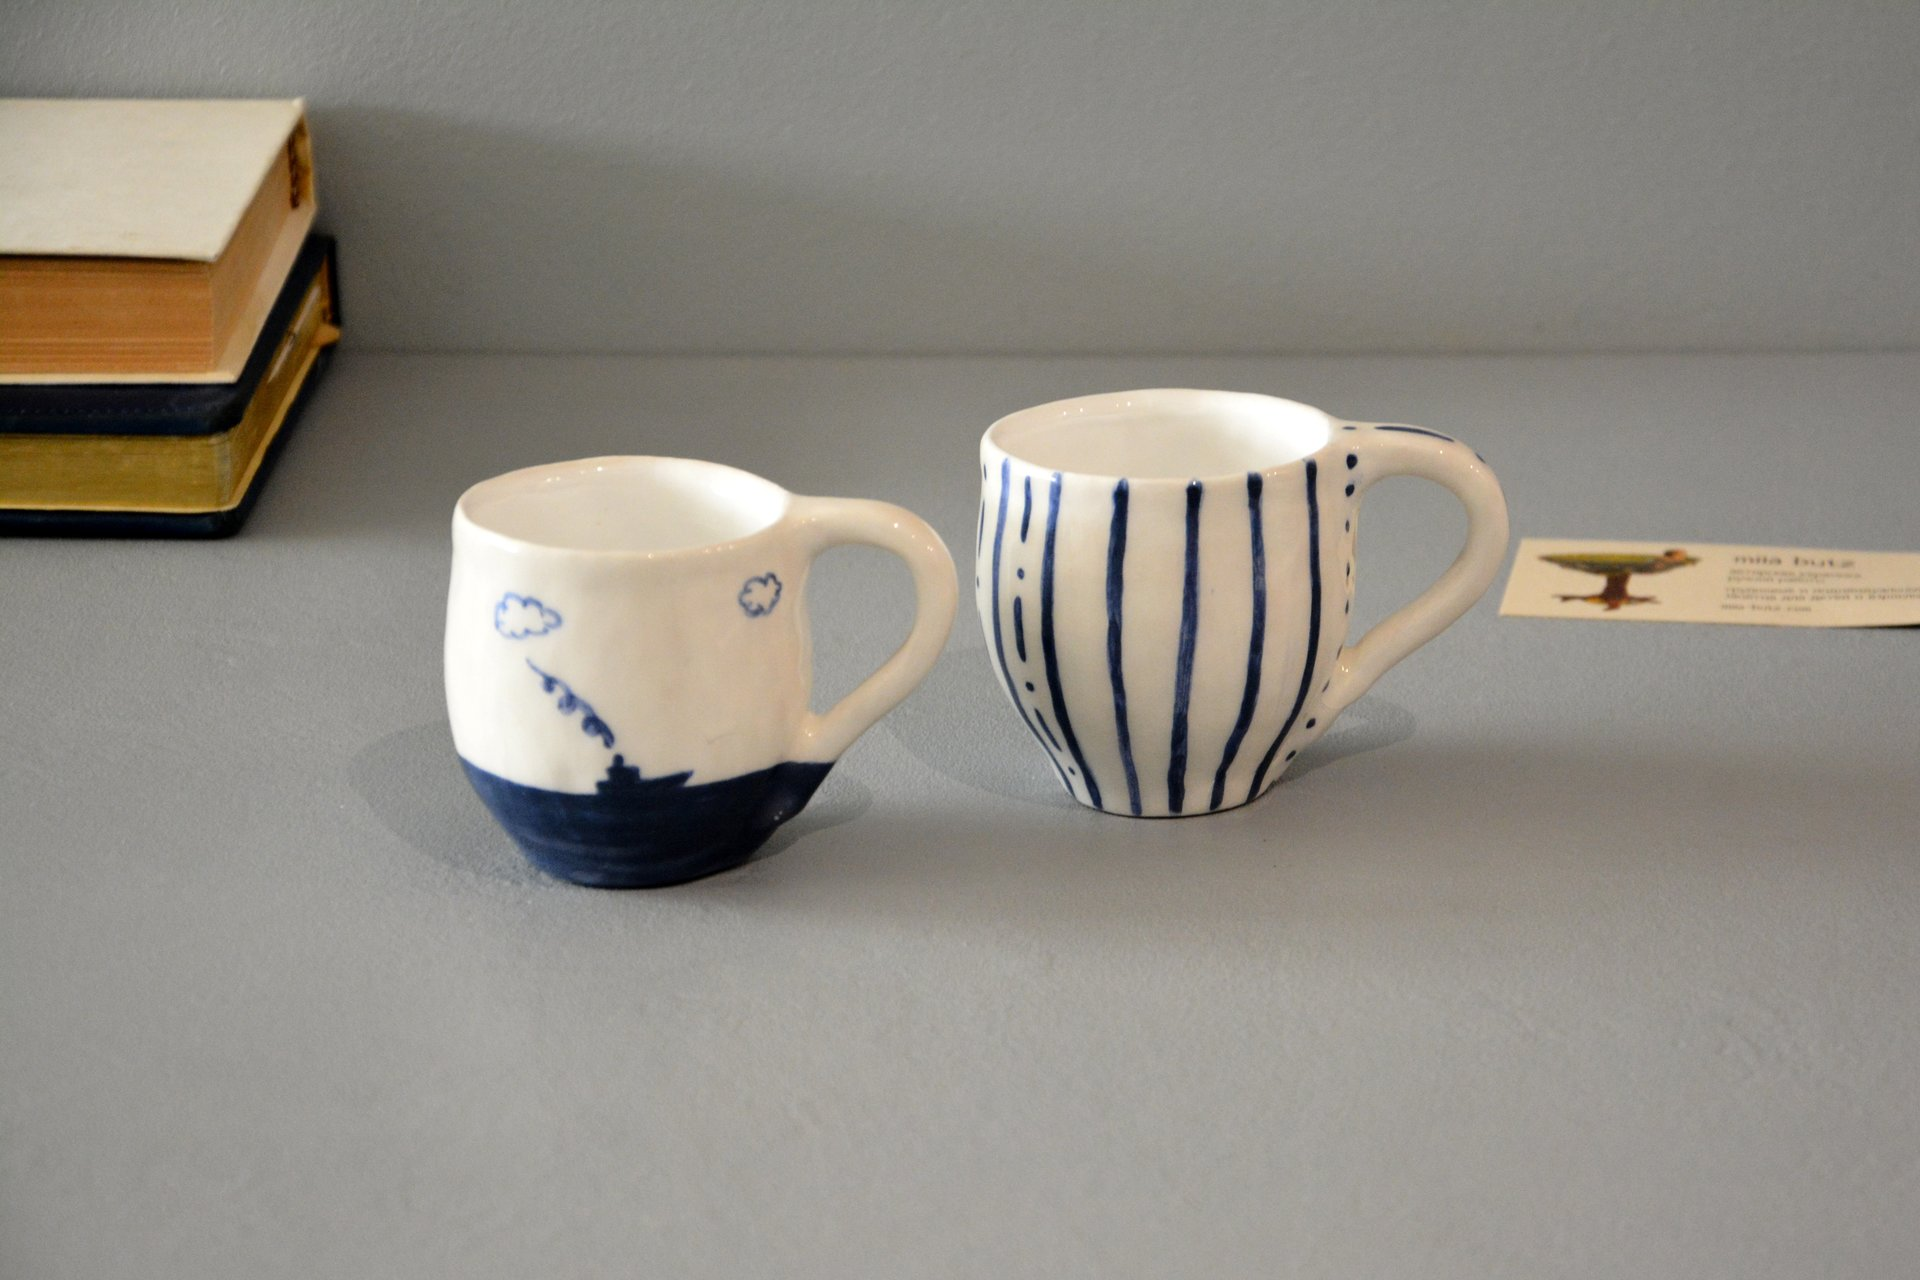 Pair of white cups for espresso, 100 ml and 150 ml, photo 1 of 5.